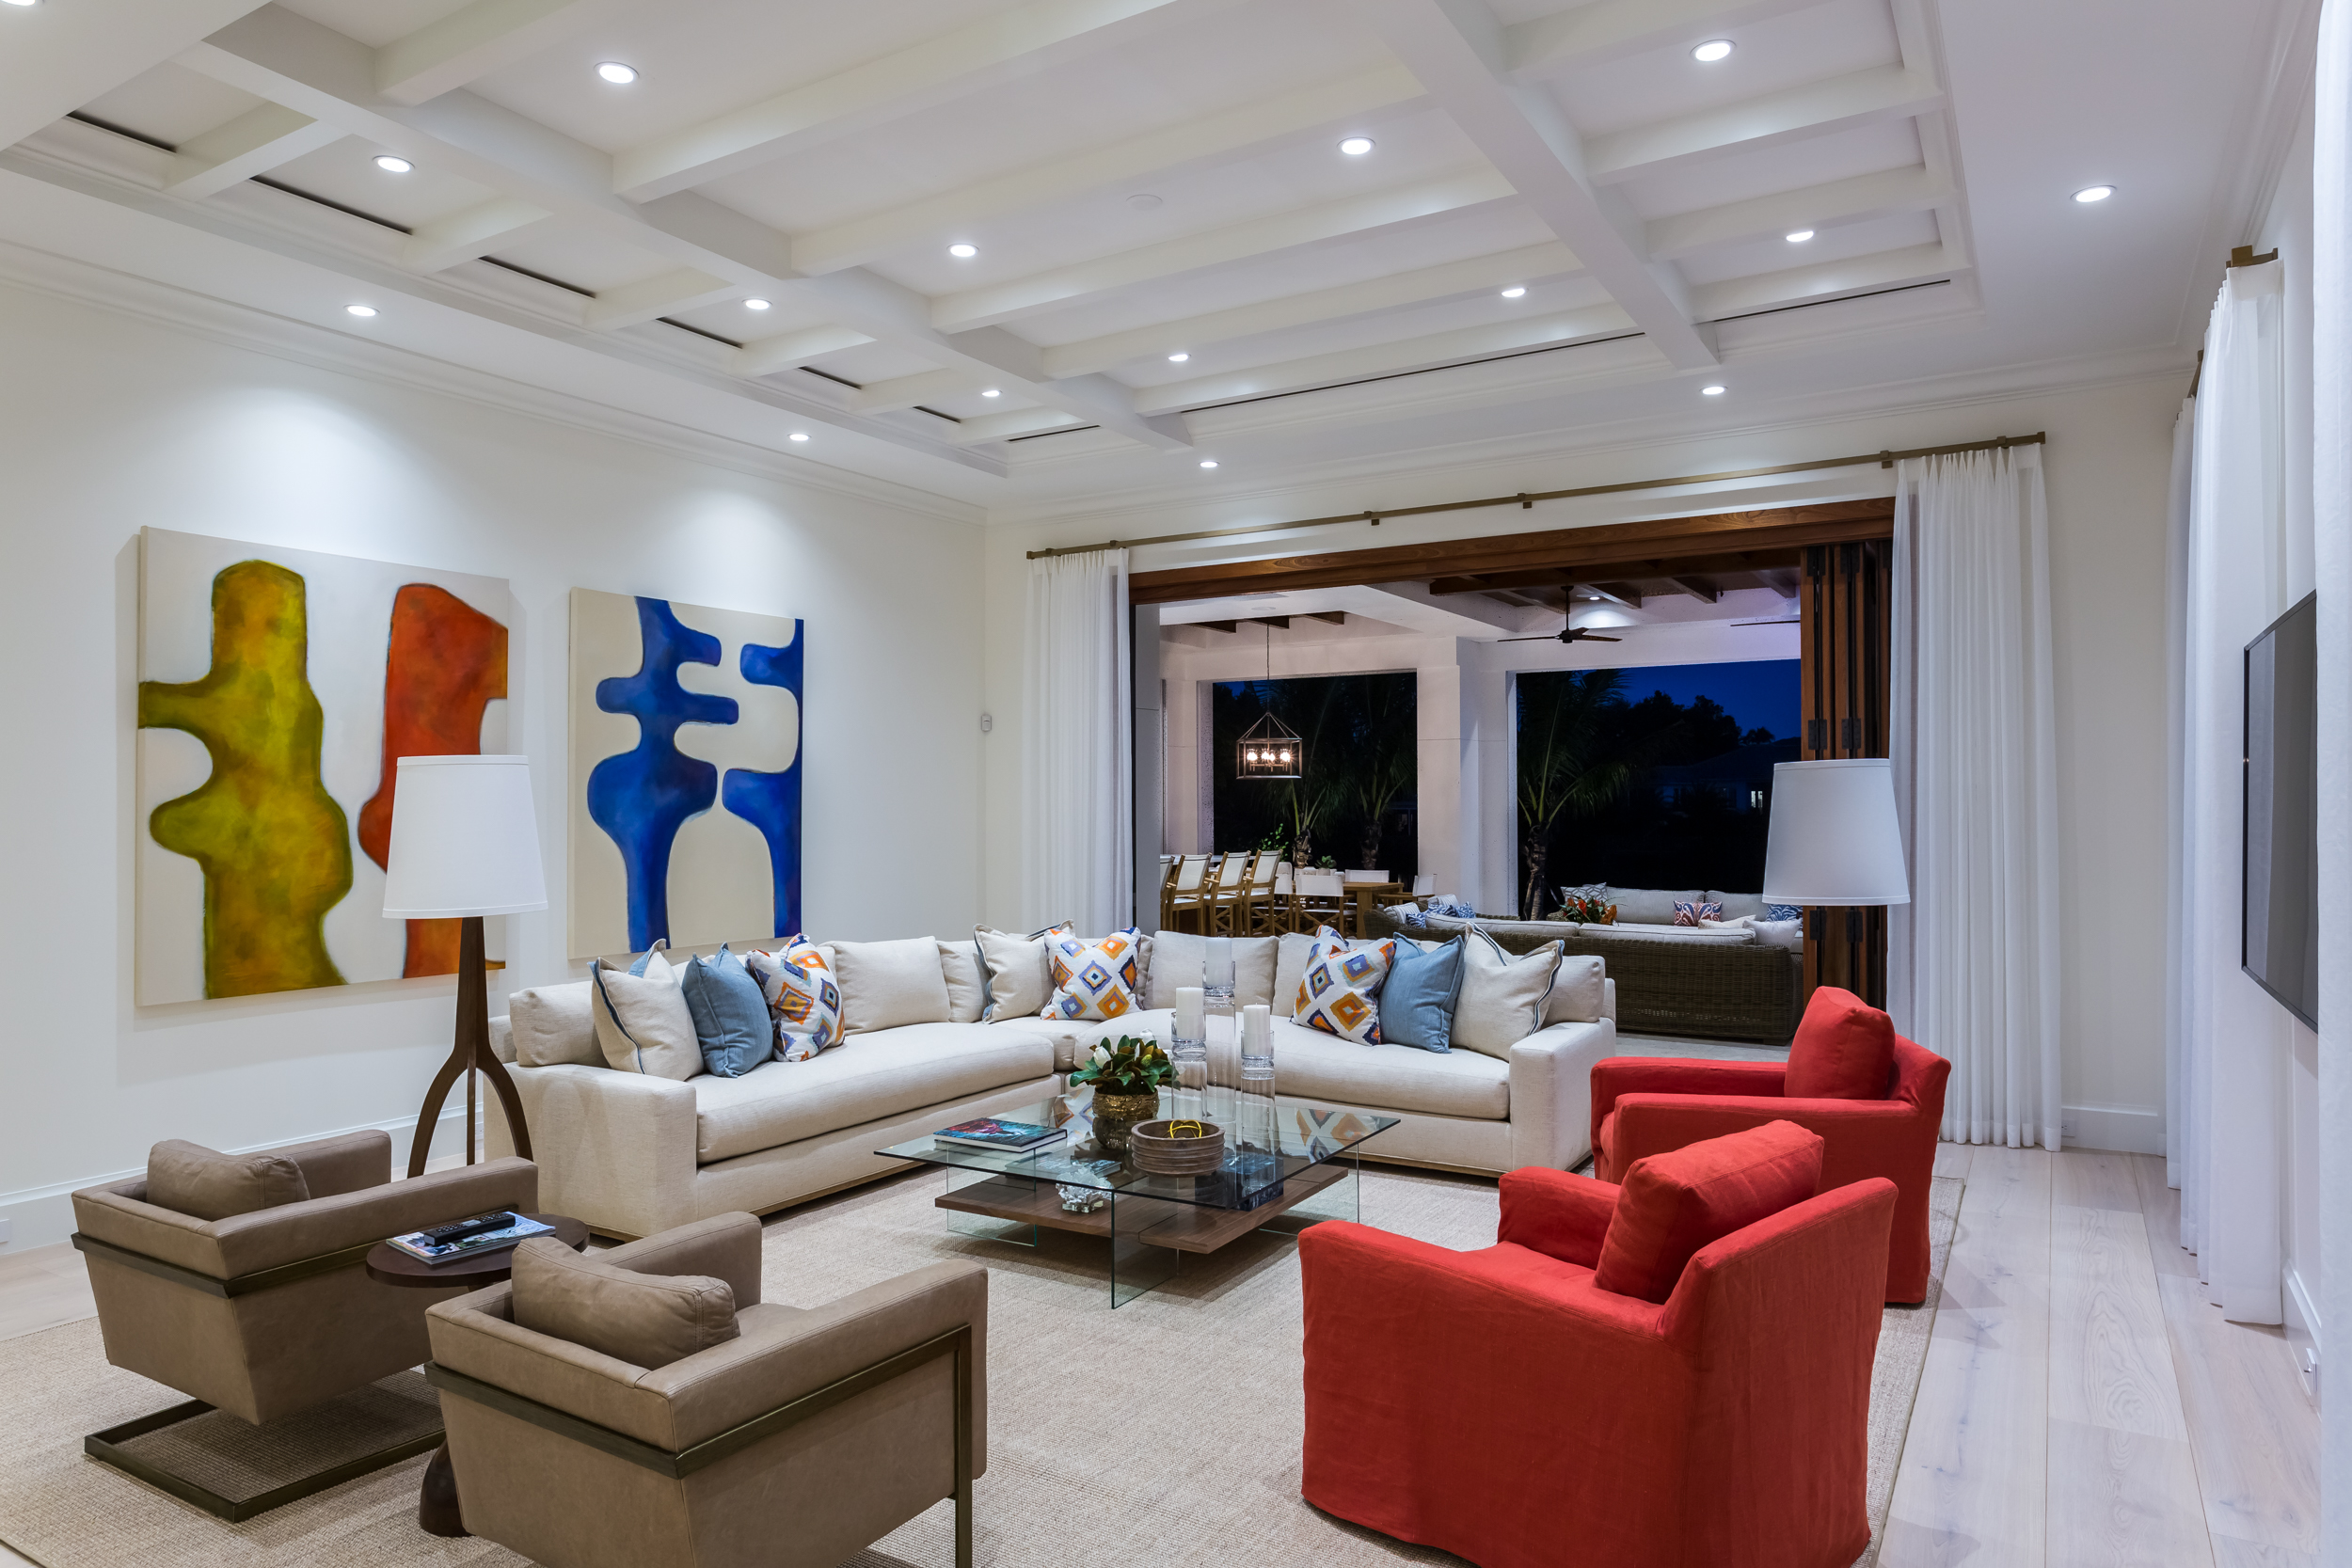 Jeffrey Fisher Home Luxury Interior Design Imagined Home Decor Media Room